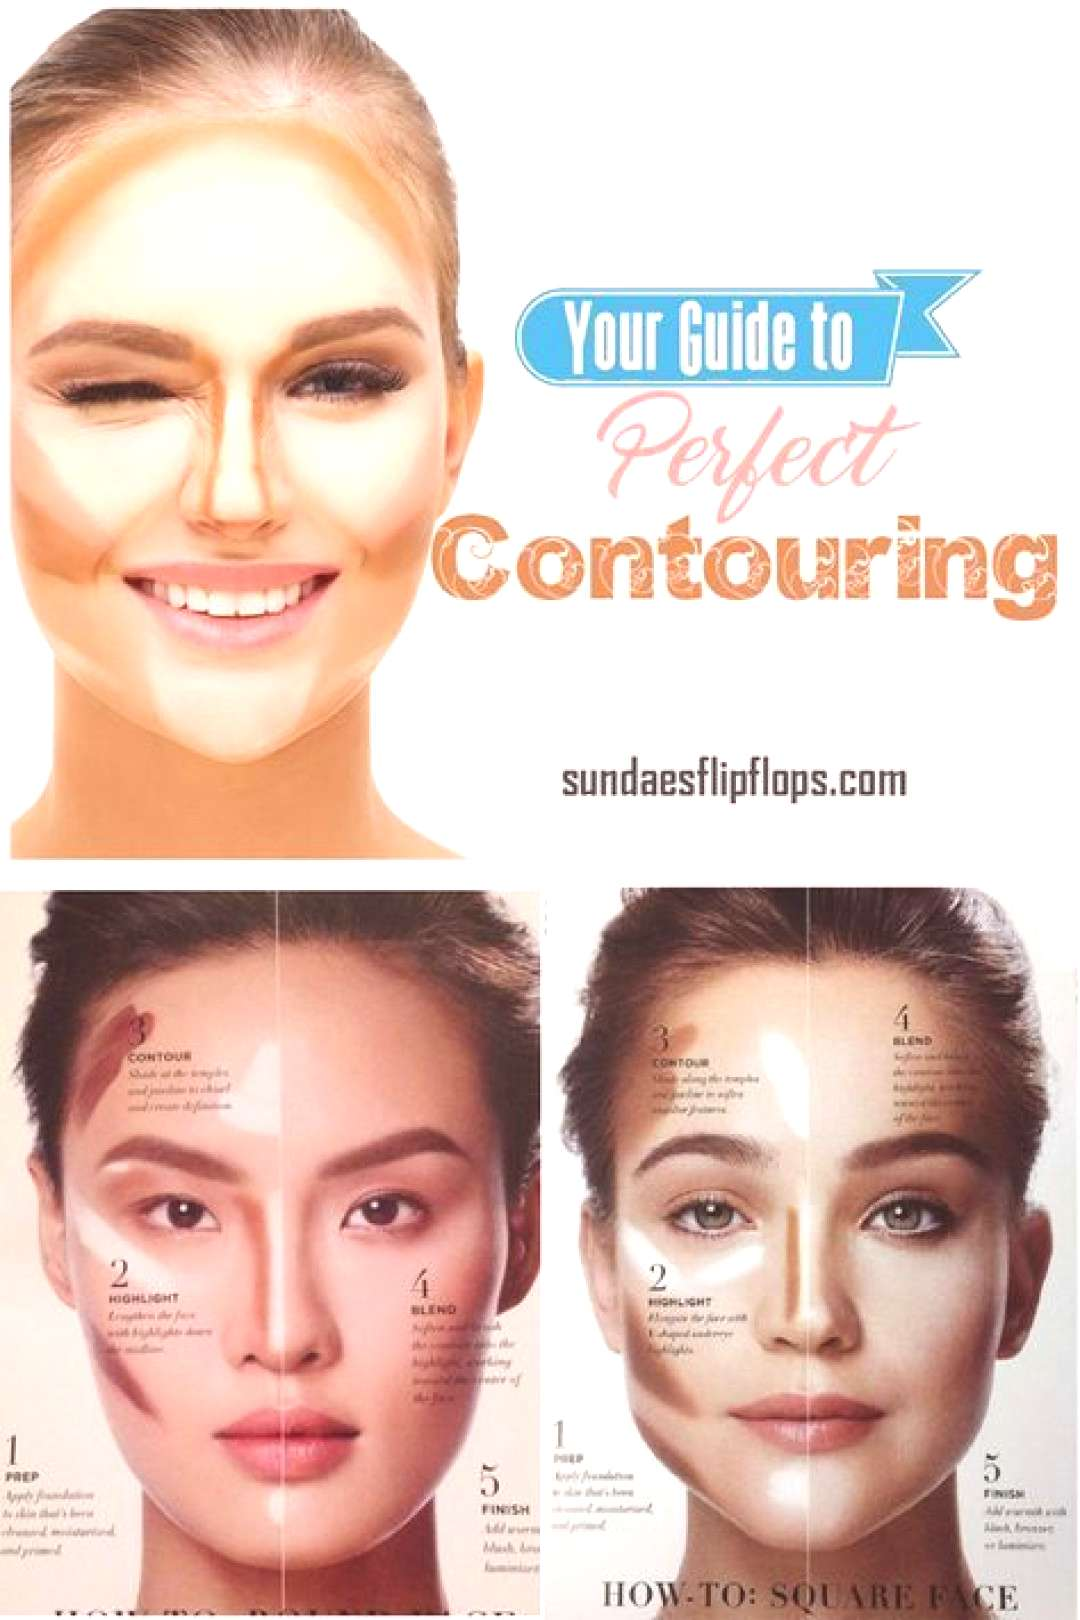 How to Contour Your Face - Contouring for Beginners#beginners